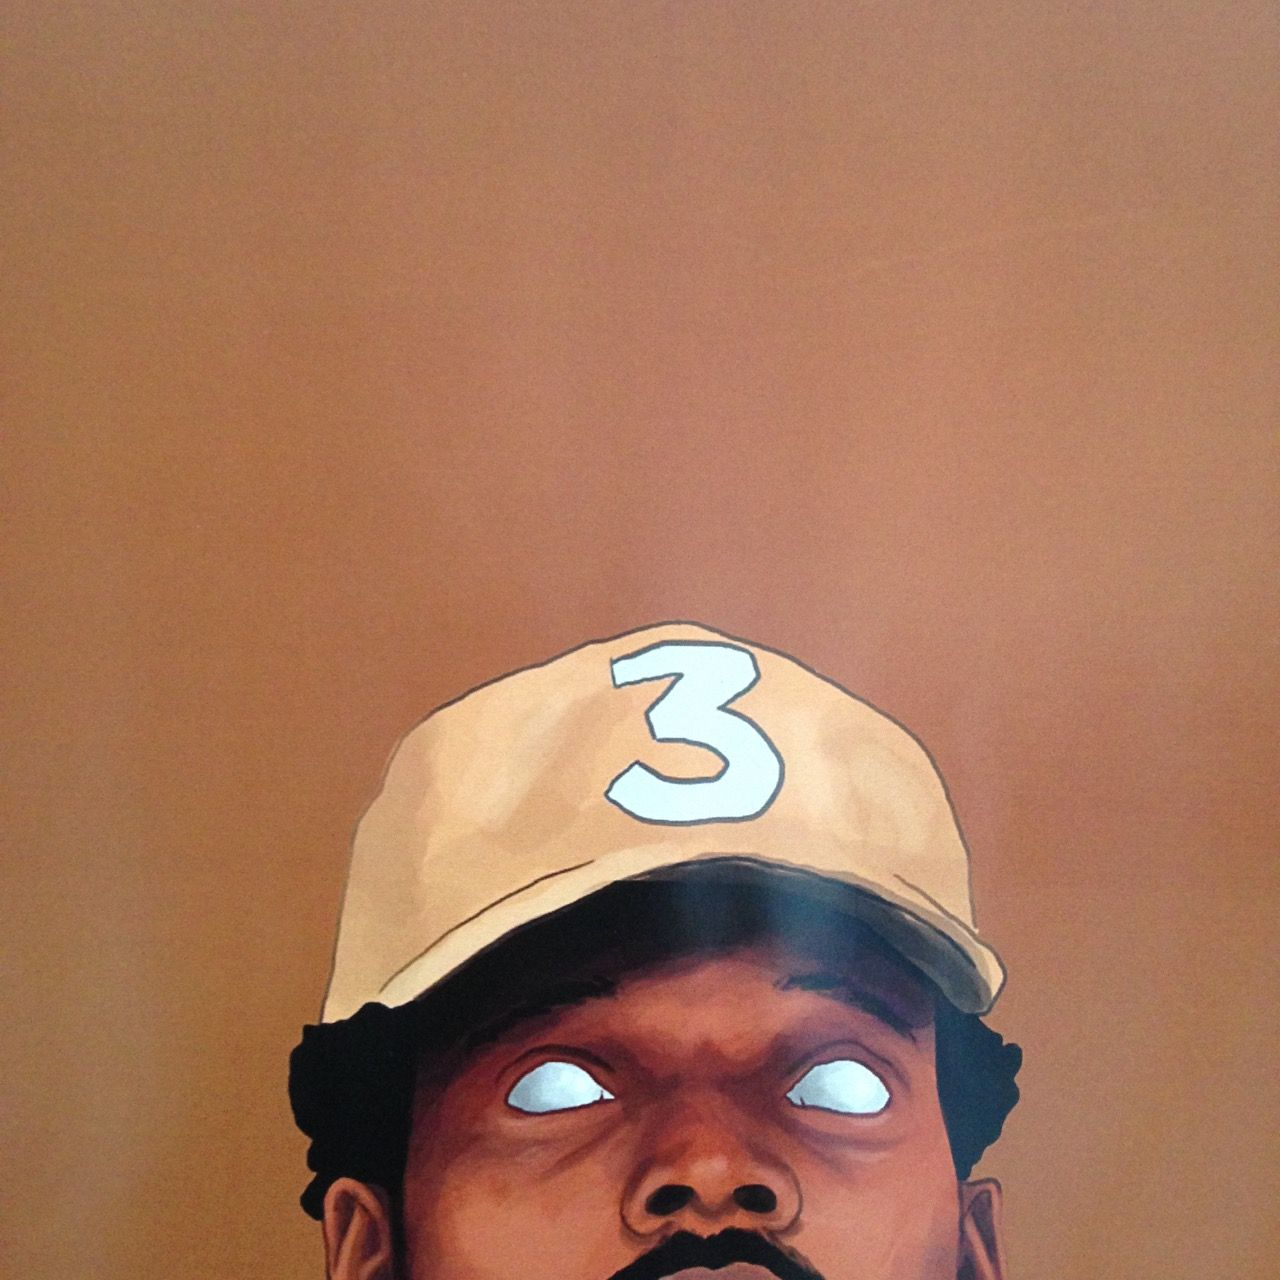 The coloring book chance the rapper download - Der Black Sheep Photo Chance The Rapperblack